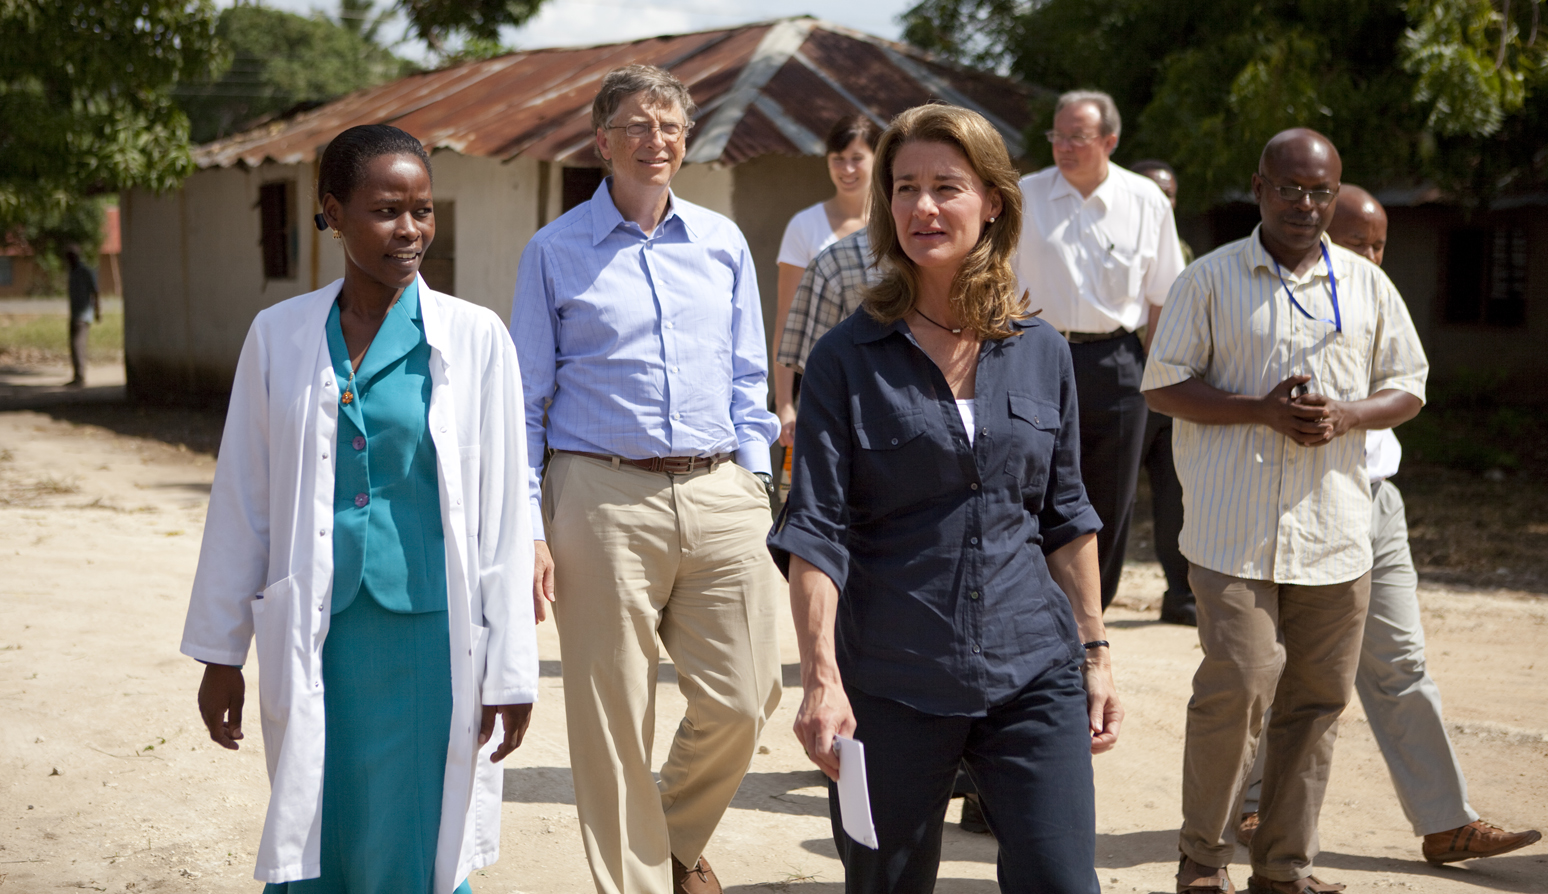 bill-and-melinda-gates-image-1.jpg